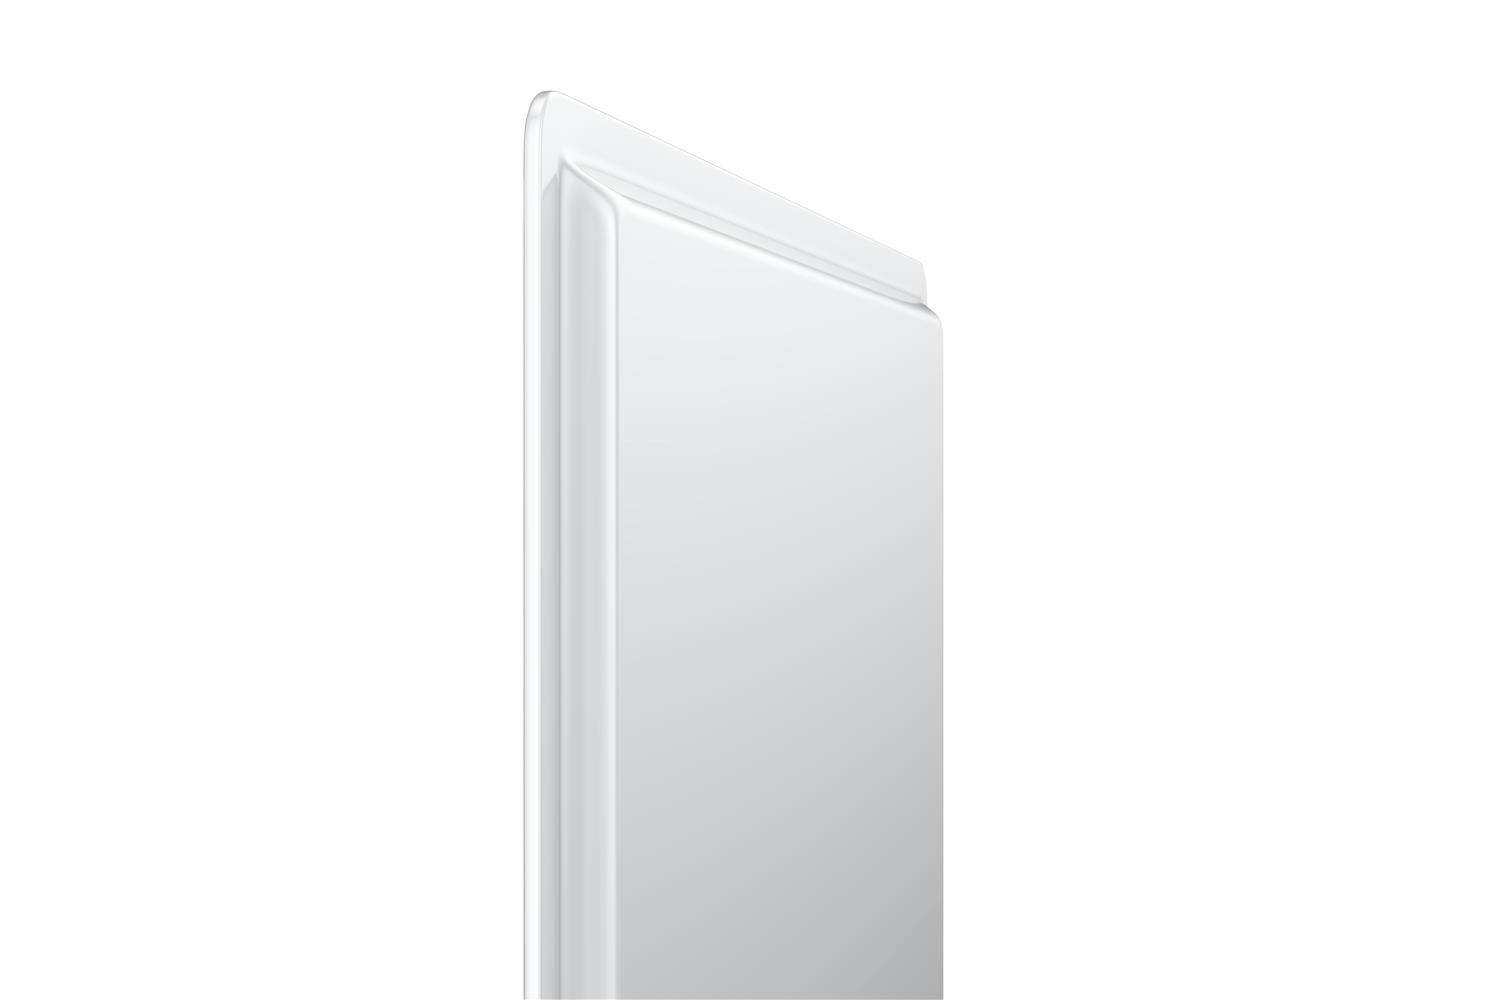 LED panel 60x60 backlit panel 600x600 backlight ultra-thin led flat panel light dimming 5